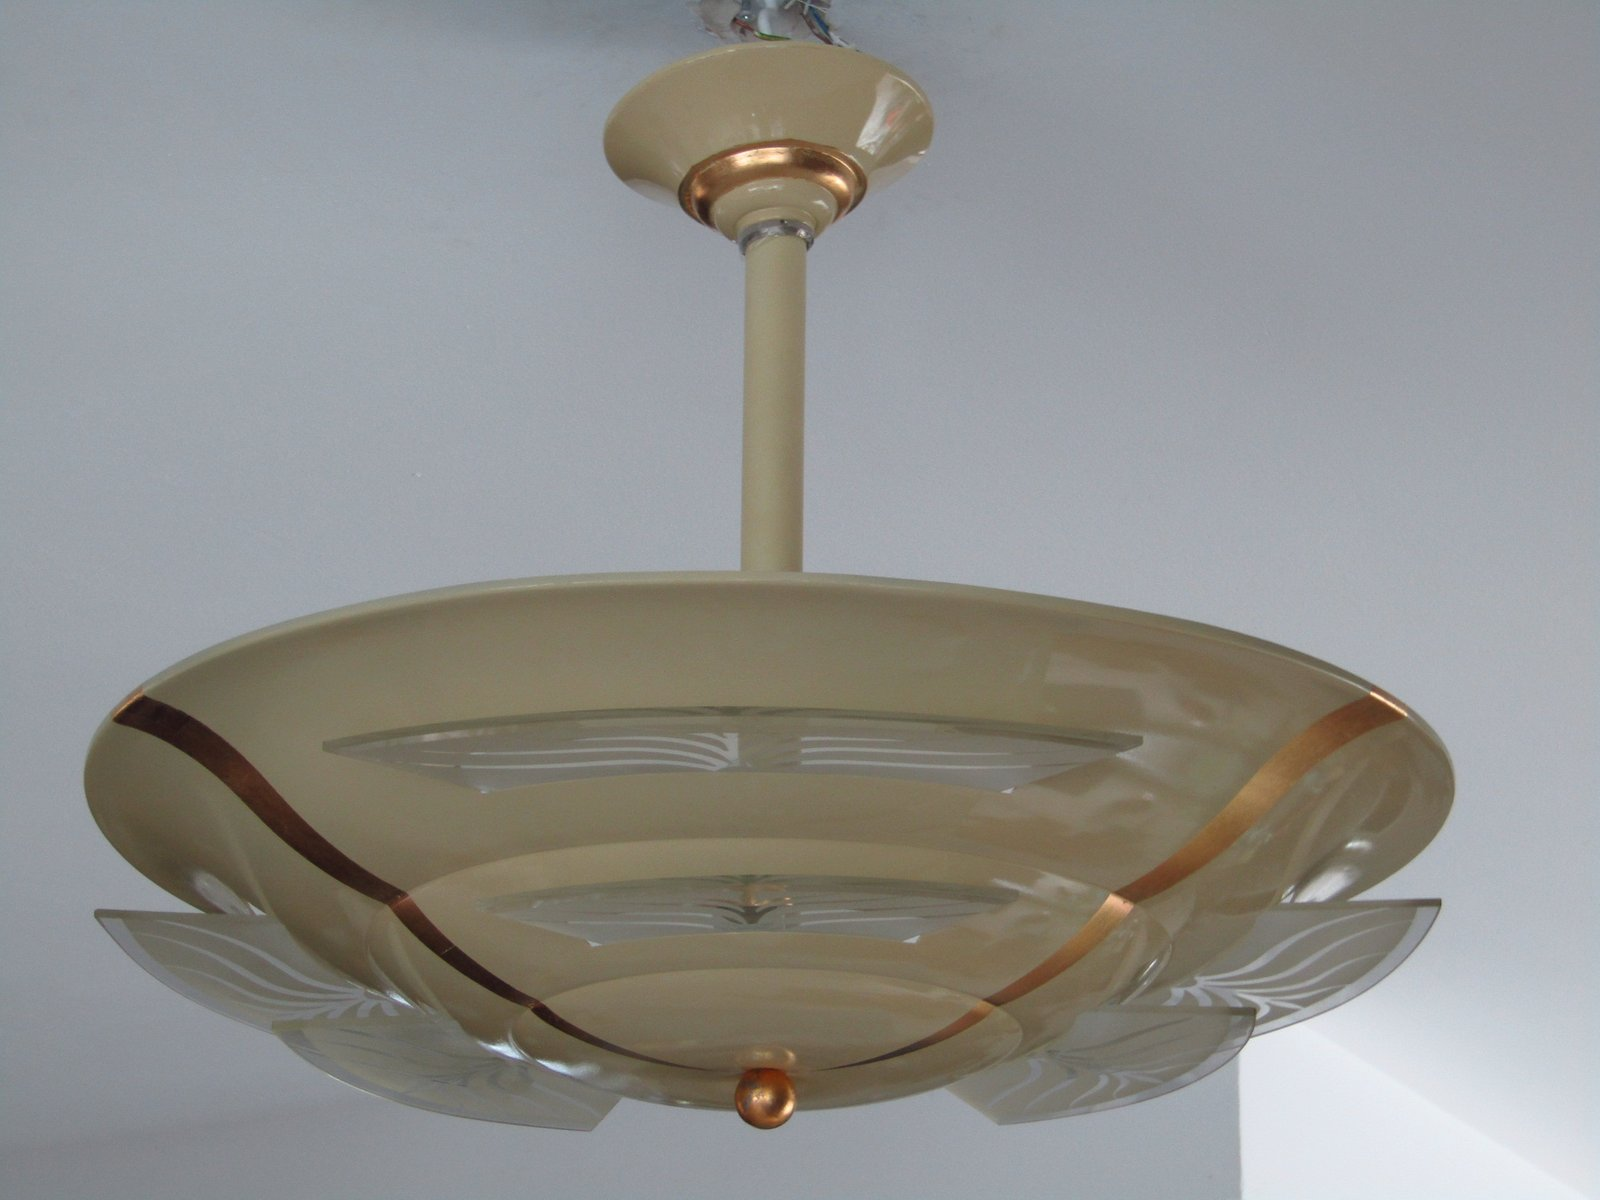 id art furniture circle light master ceiling deco pendant glass at lights brass spanish etched f chandeliers circa double ceilings lighting hoop